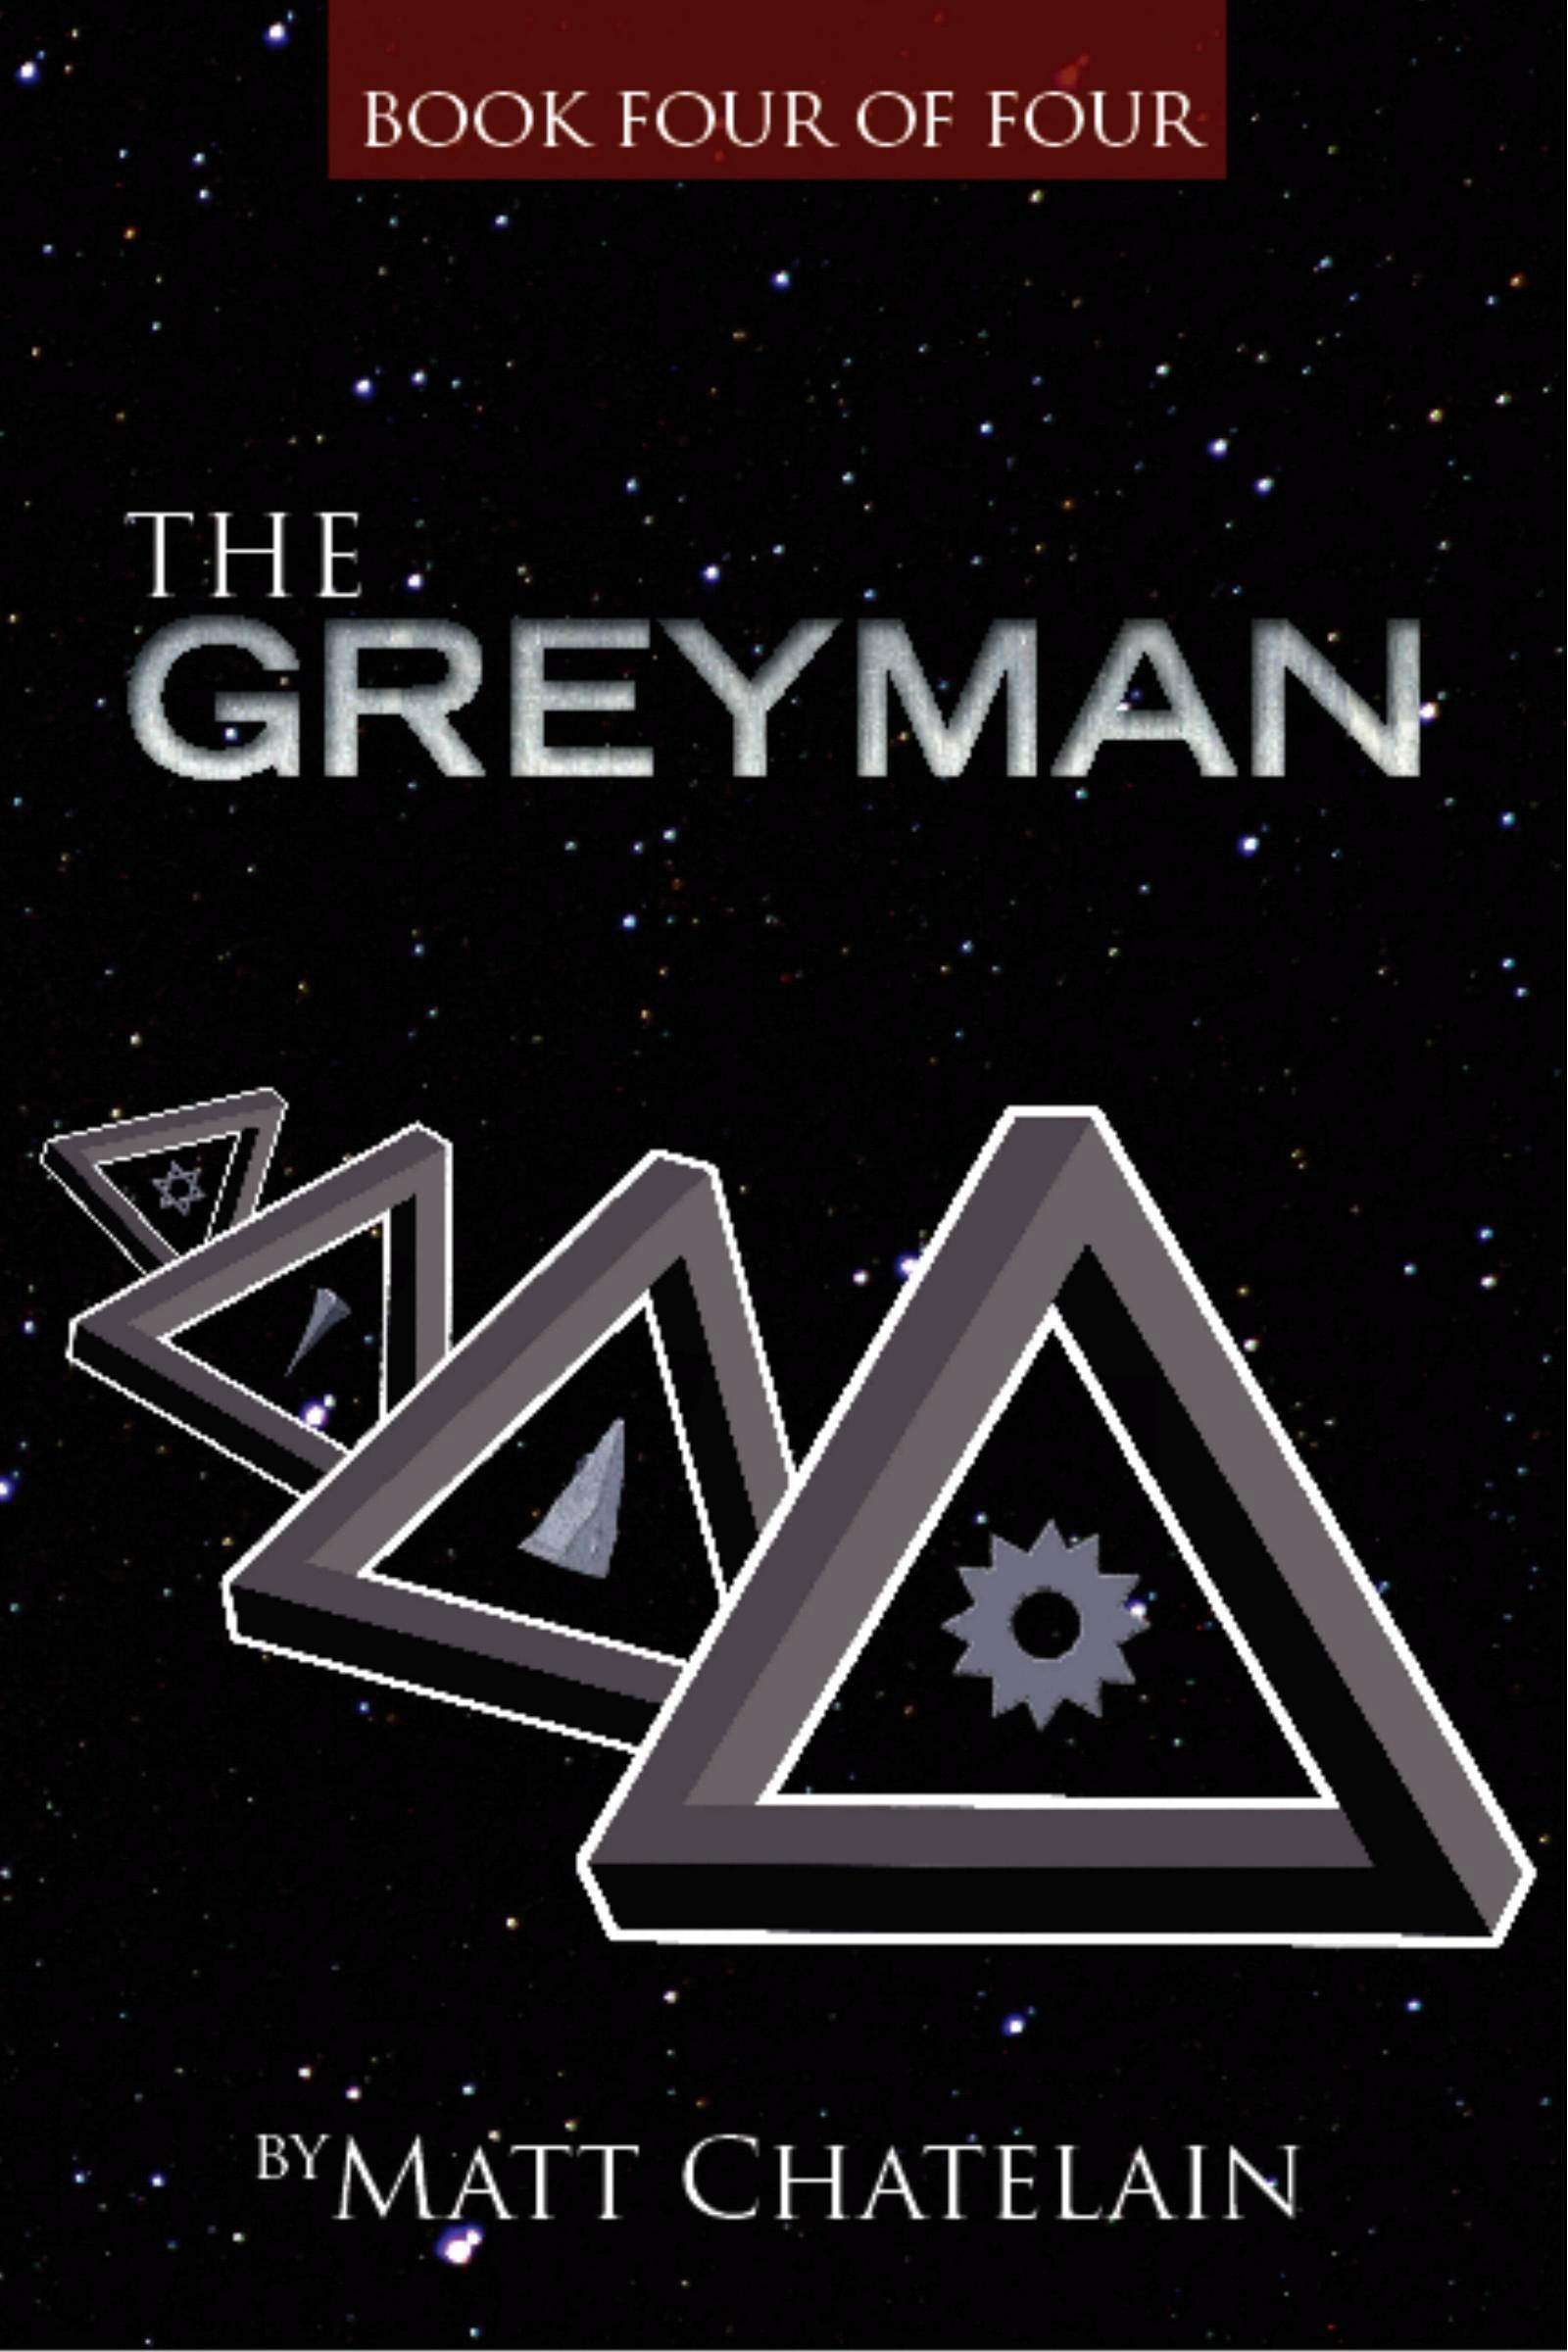 The Greyman, Book Four of Four By: Matt Chatelain